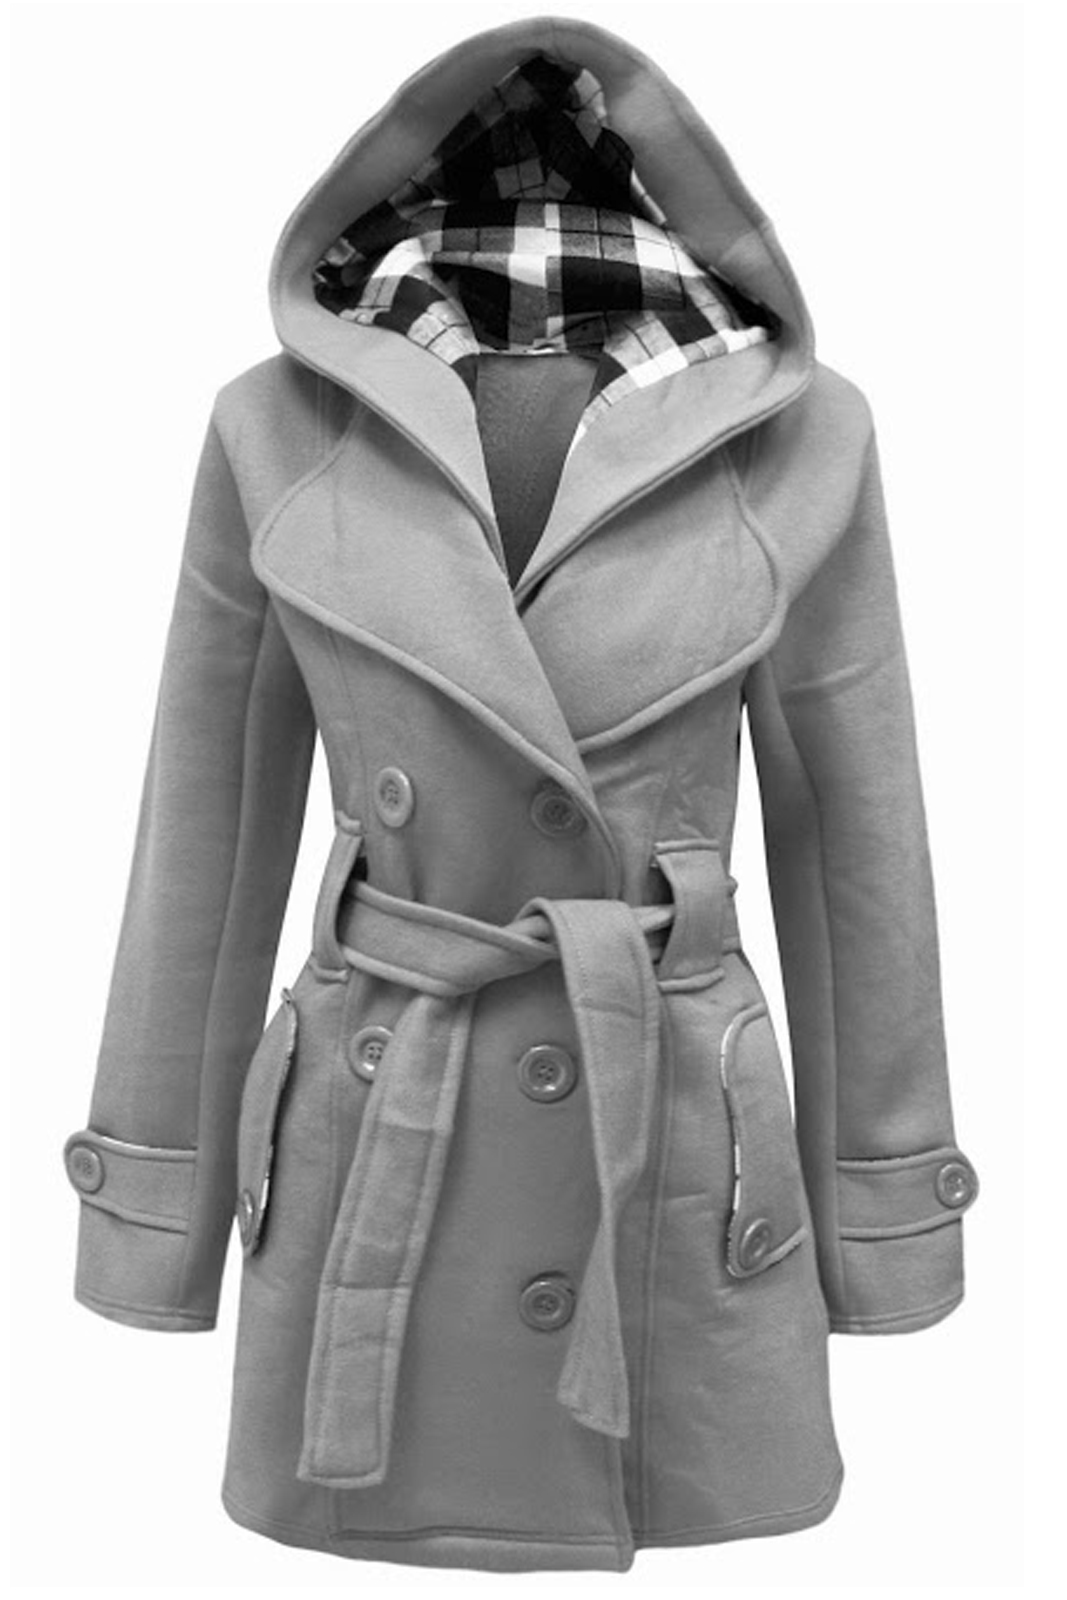 Cexi Couture Womens Ladies Double Breasted Fleece Winter ...